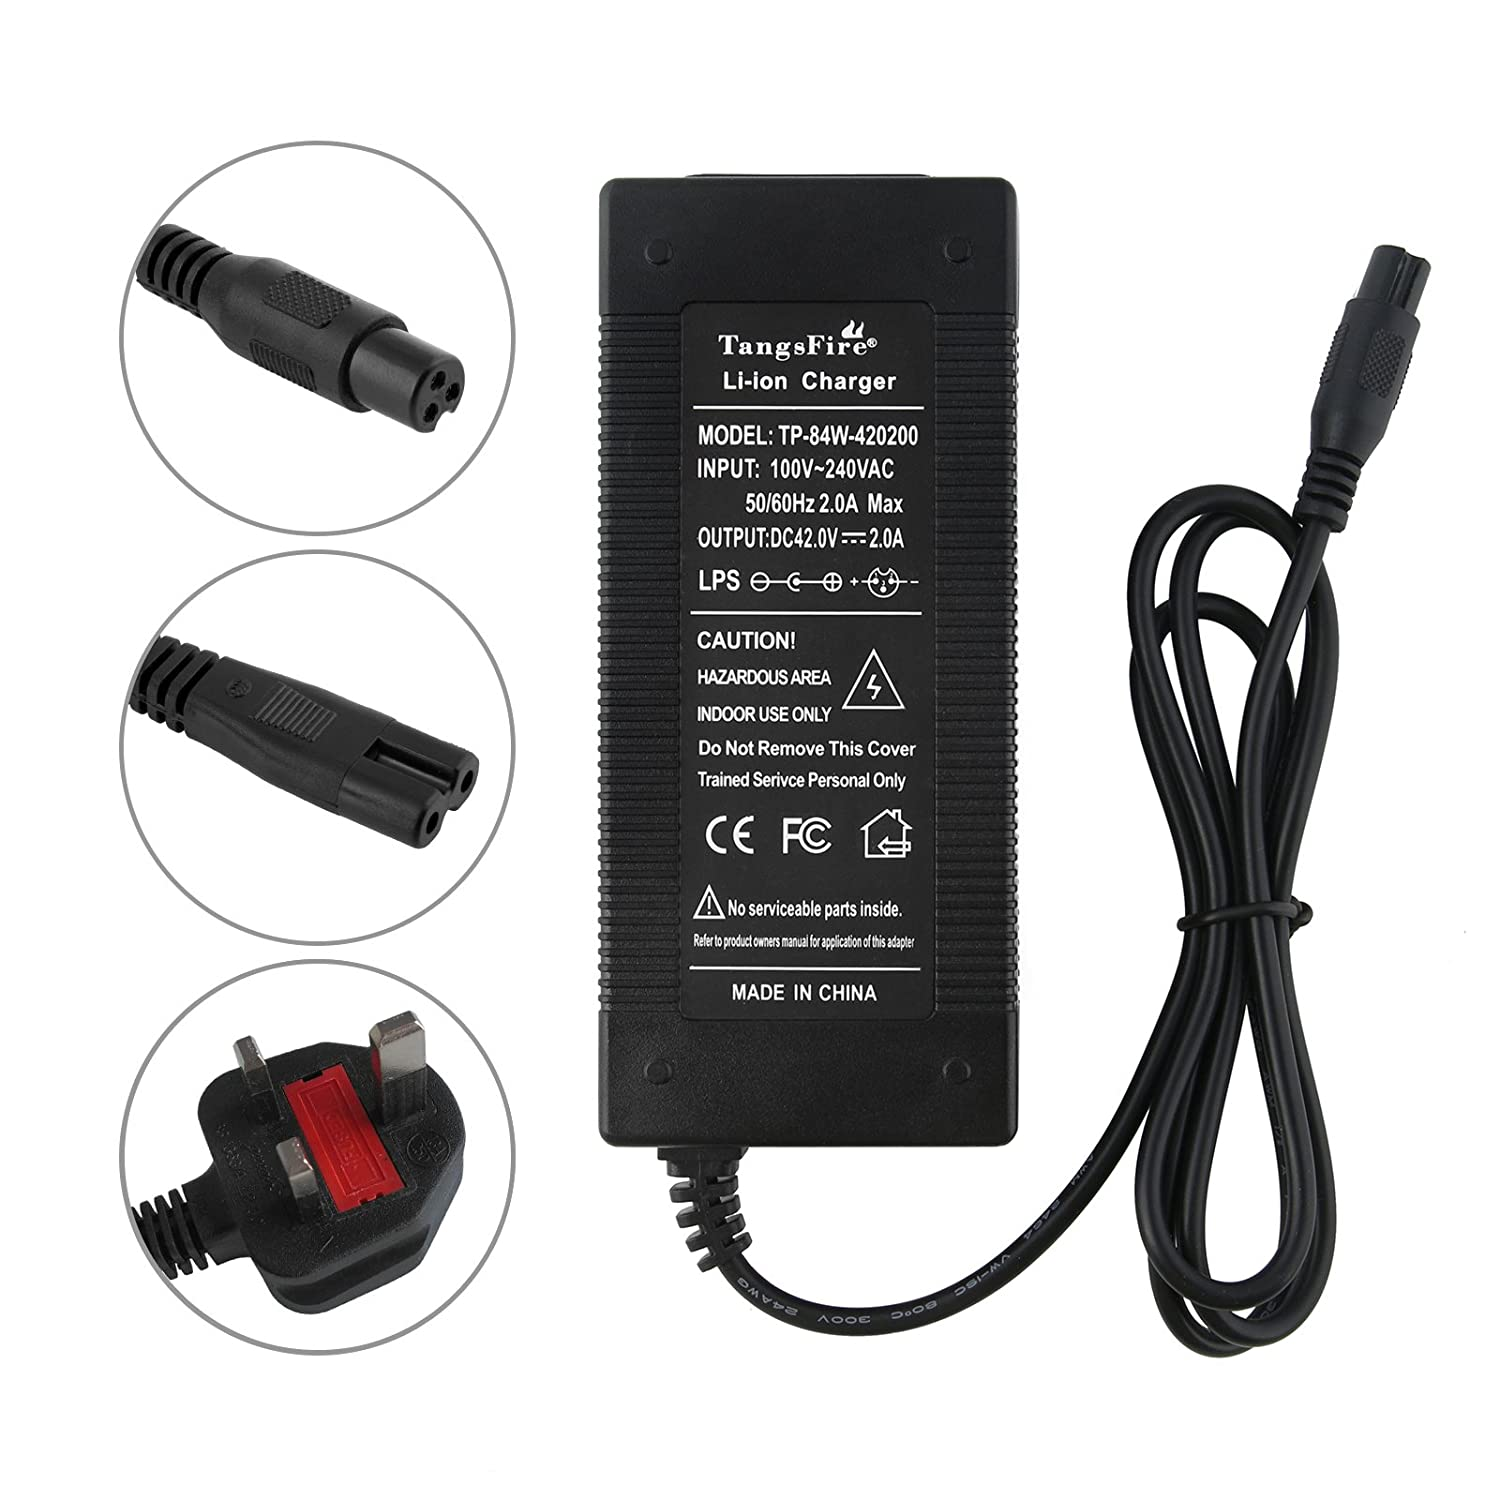 TangsFire 36V 2A Lithium Battery Charger for Ebike Powerboard Mini 3-Prong Max 42V 2A